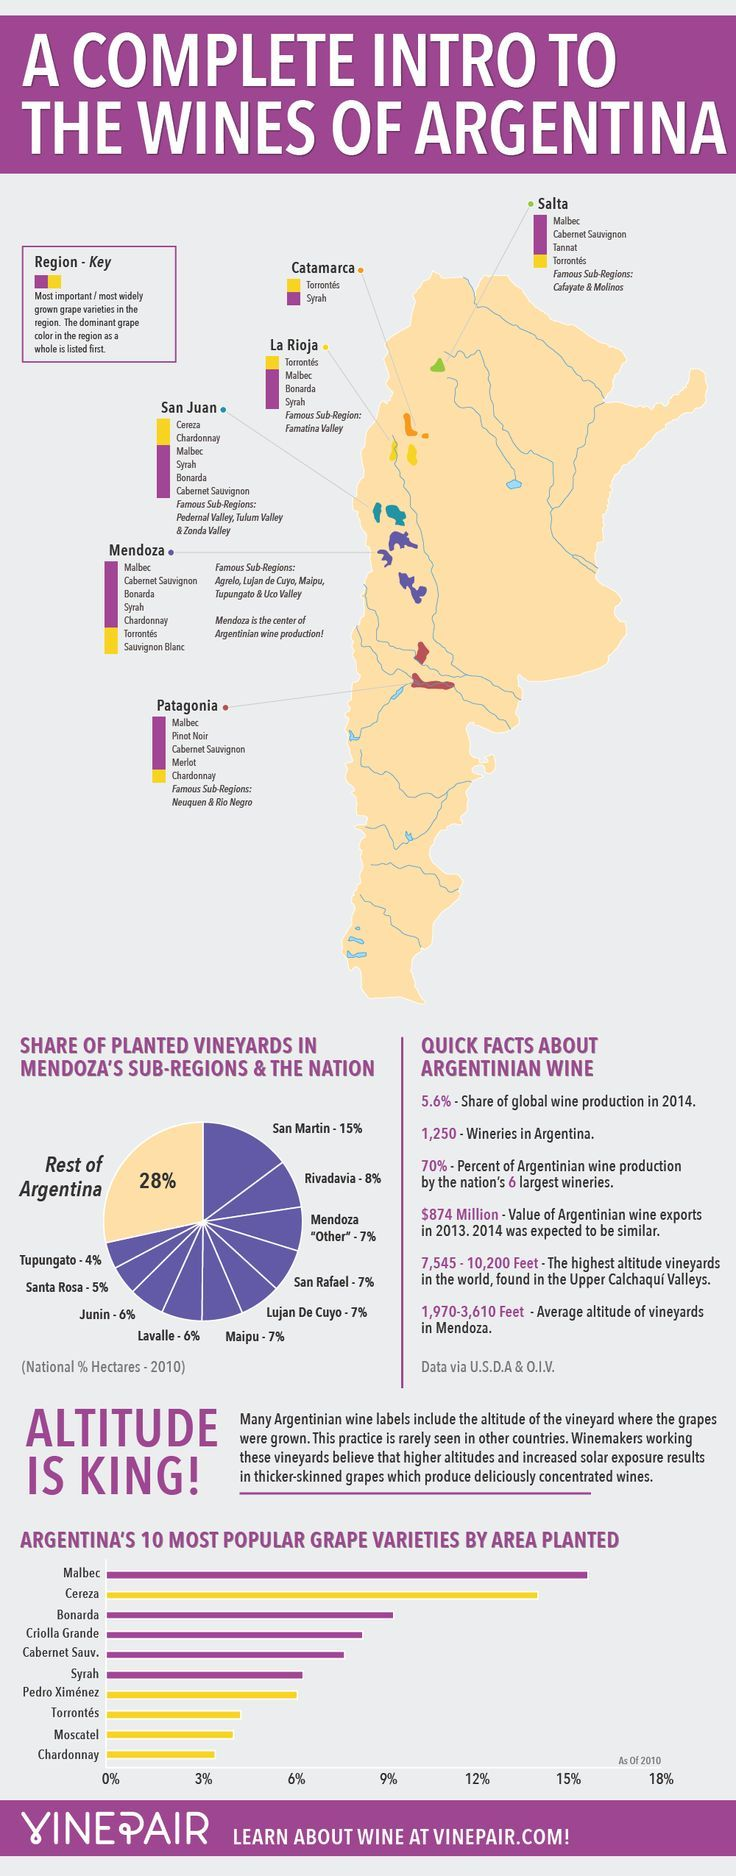 INFOGRAPHIC: The complete introduction to the wines of Argentina.